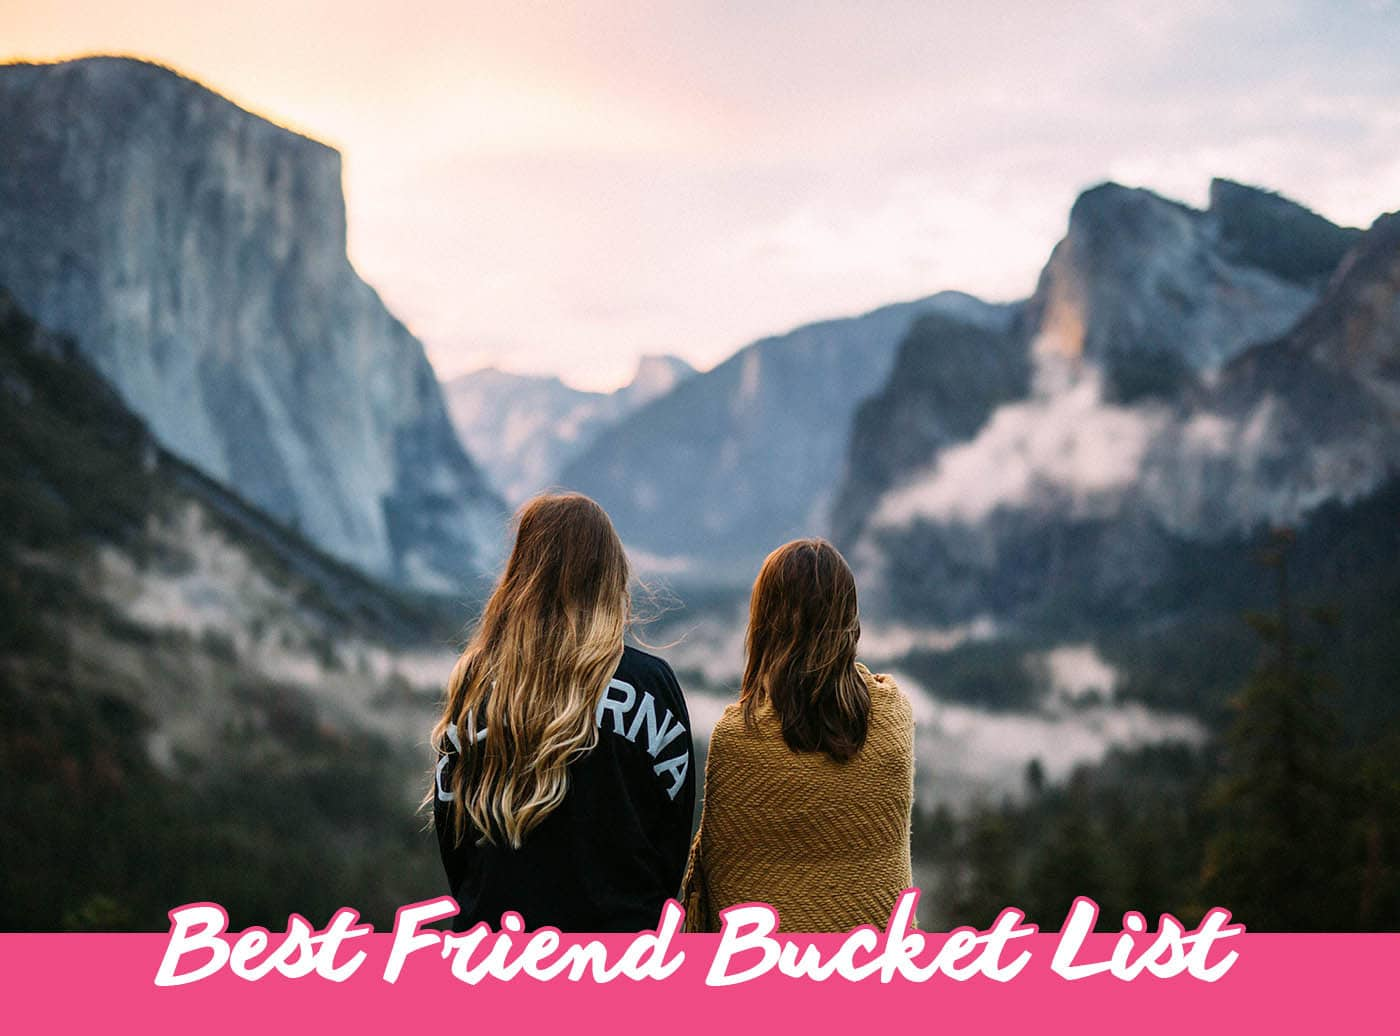 Best Friend Bucket List - Things to do with your Best Friend   Bucket List Inspiration & Ideas